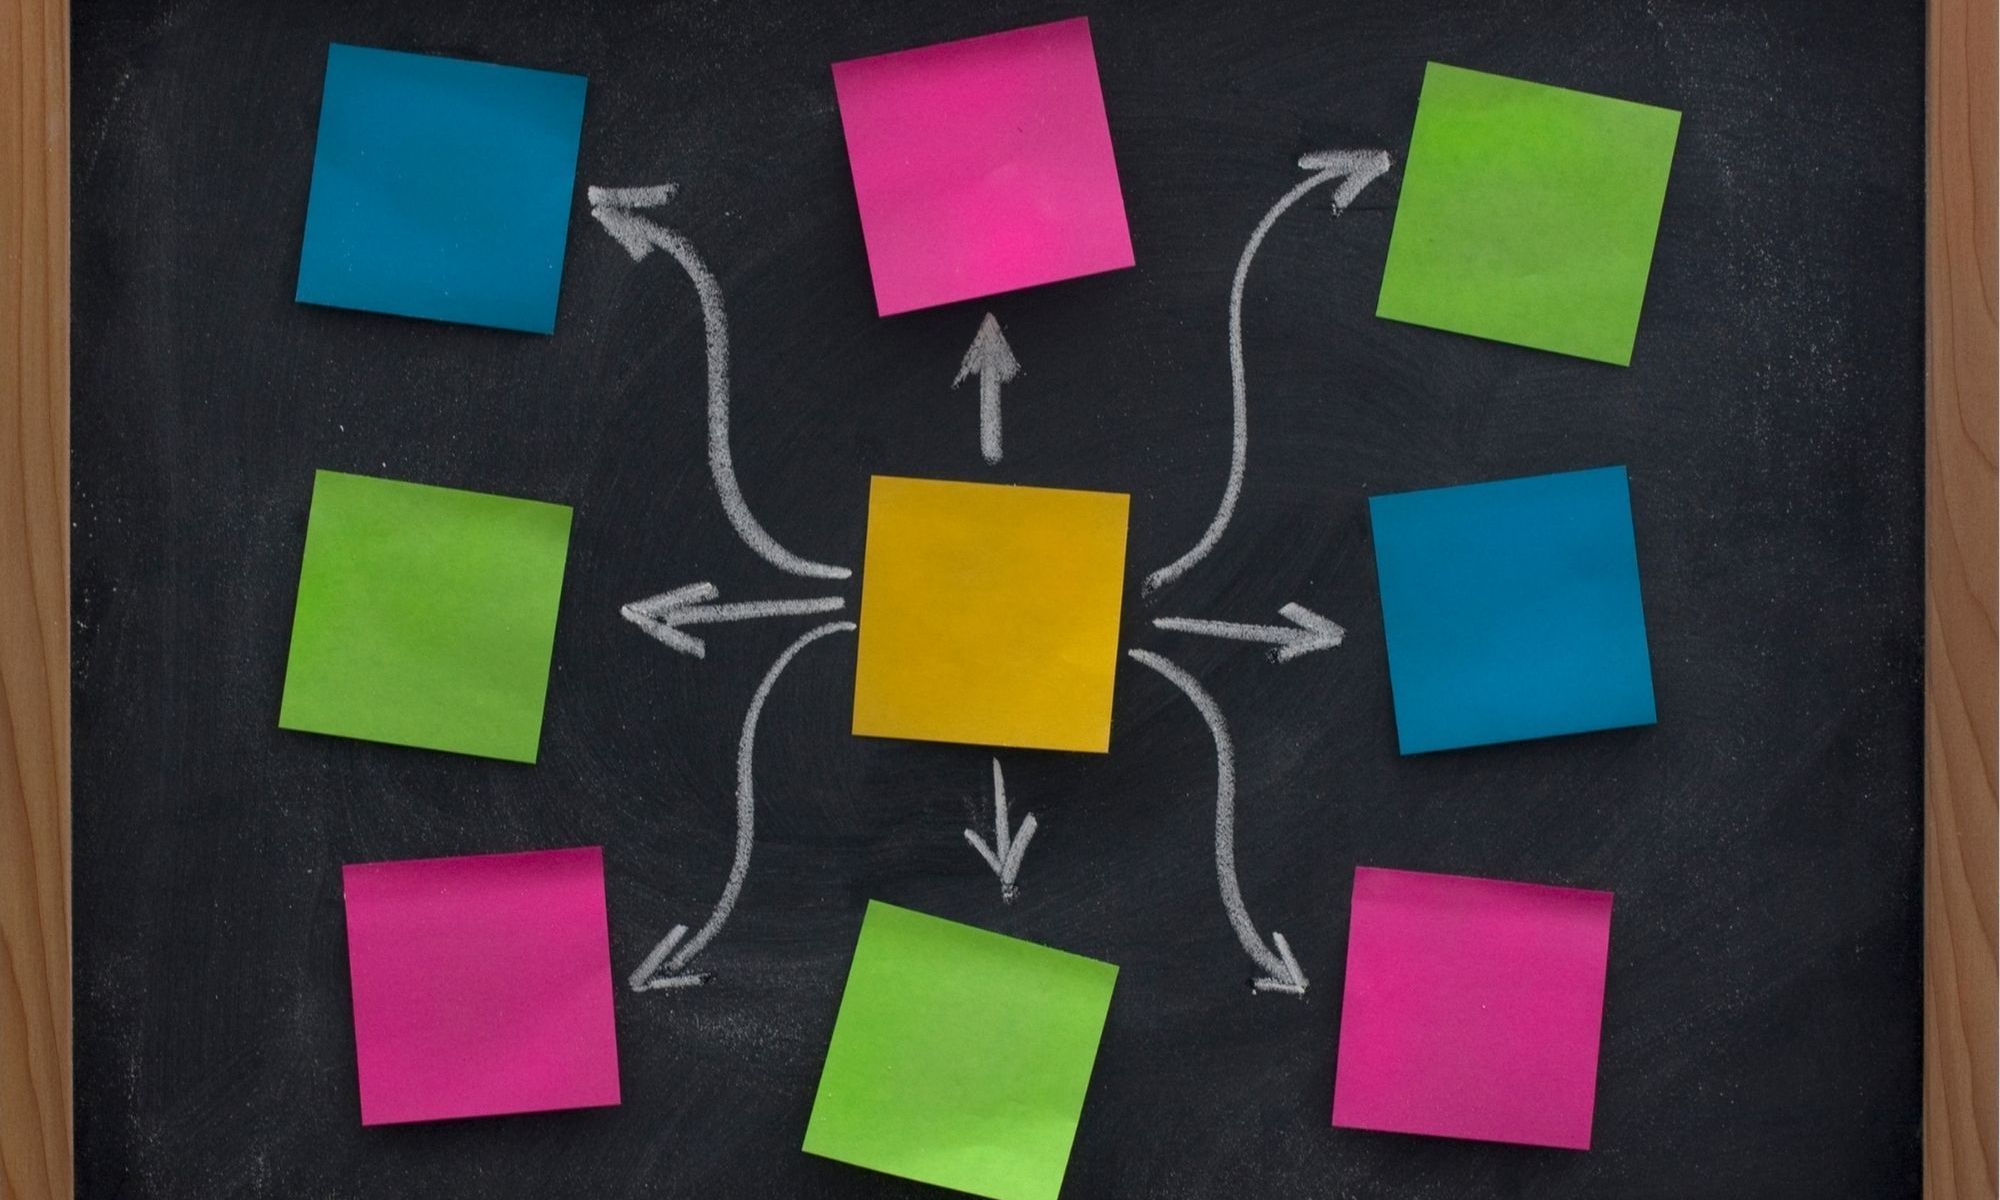 A picture of a chalkboard with colorful blue, green, pink and yellow post its on it, arranged in the form of a mind map.